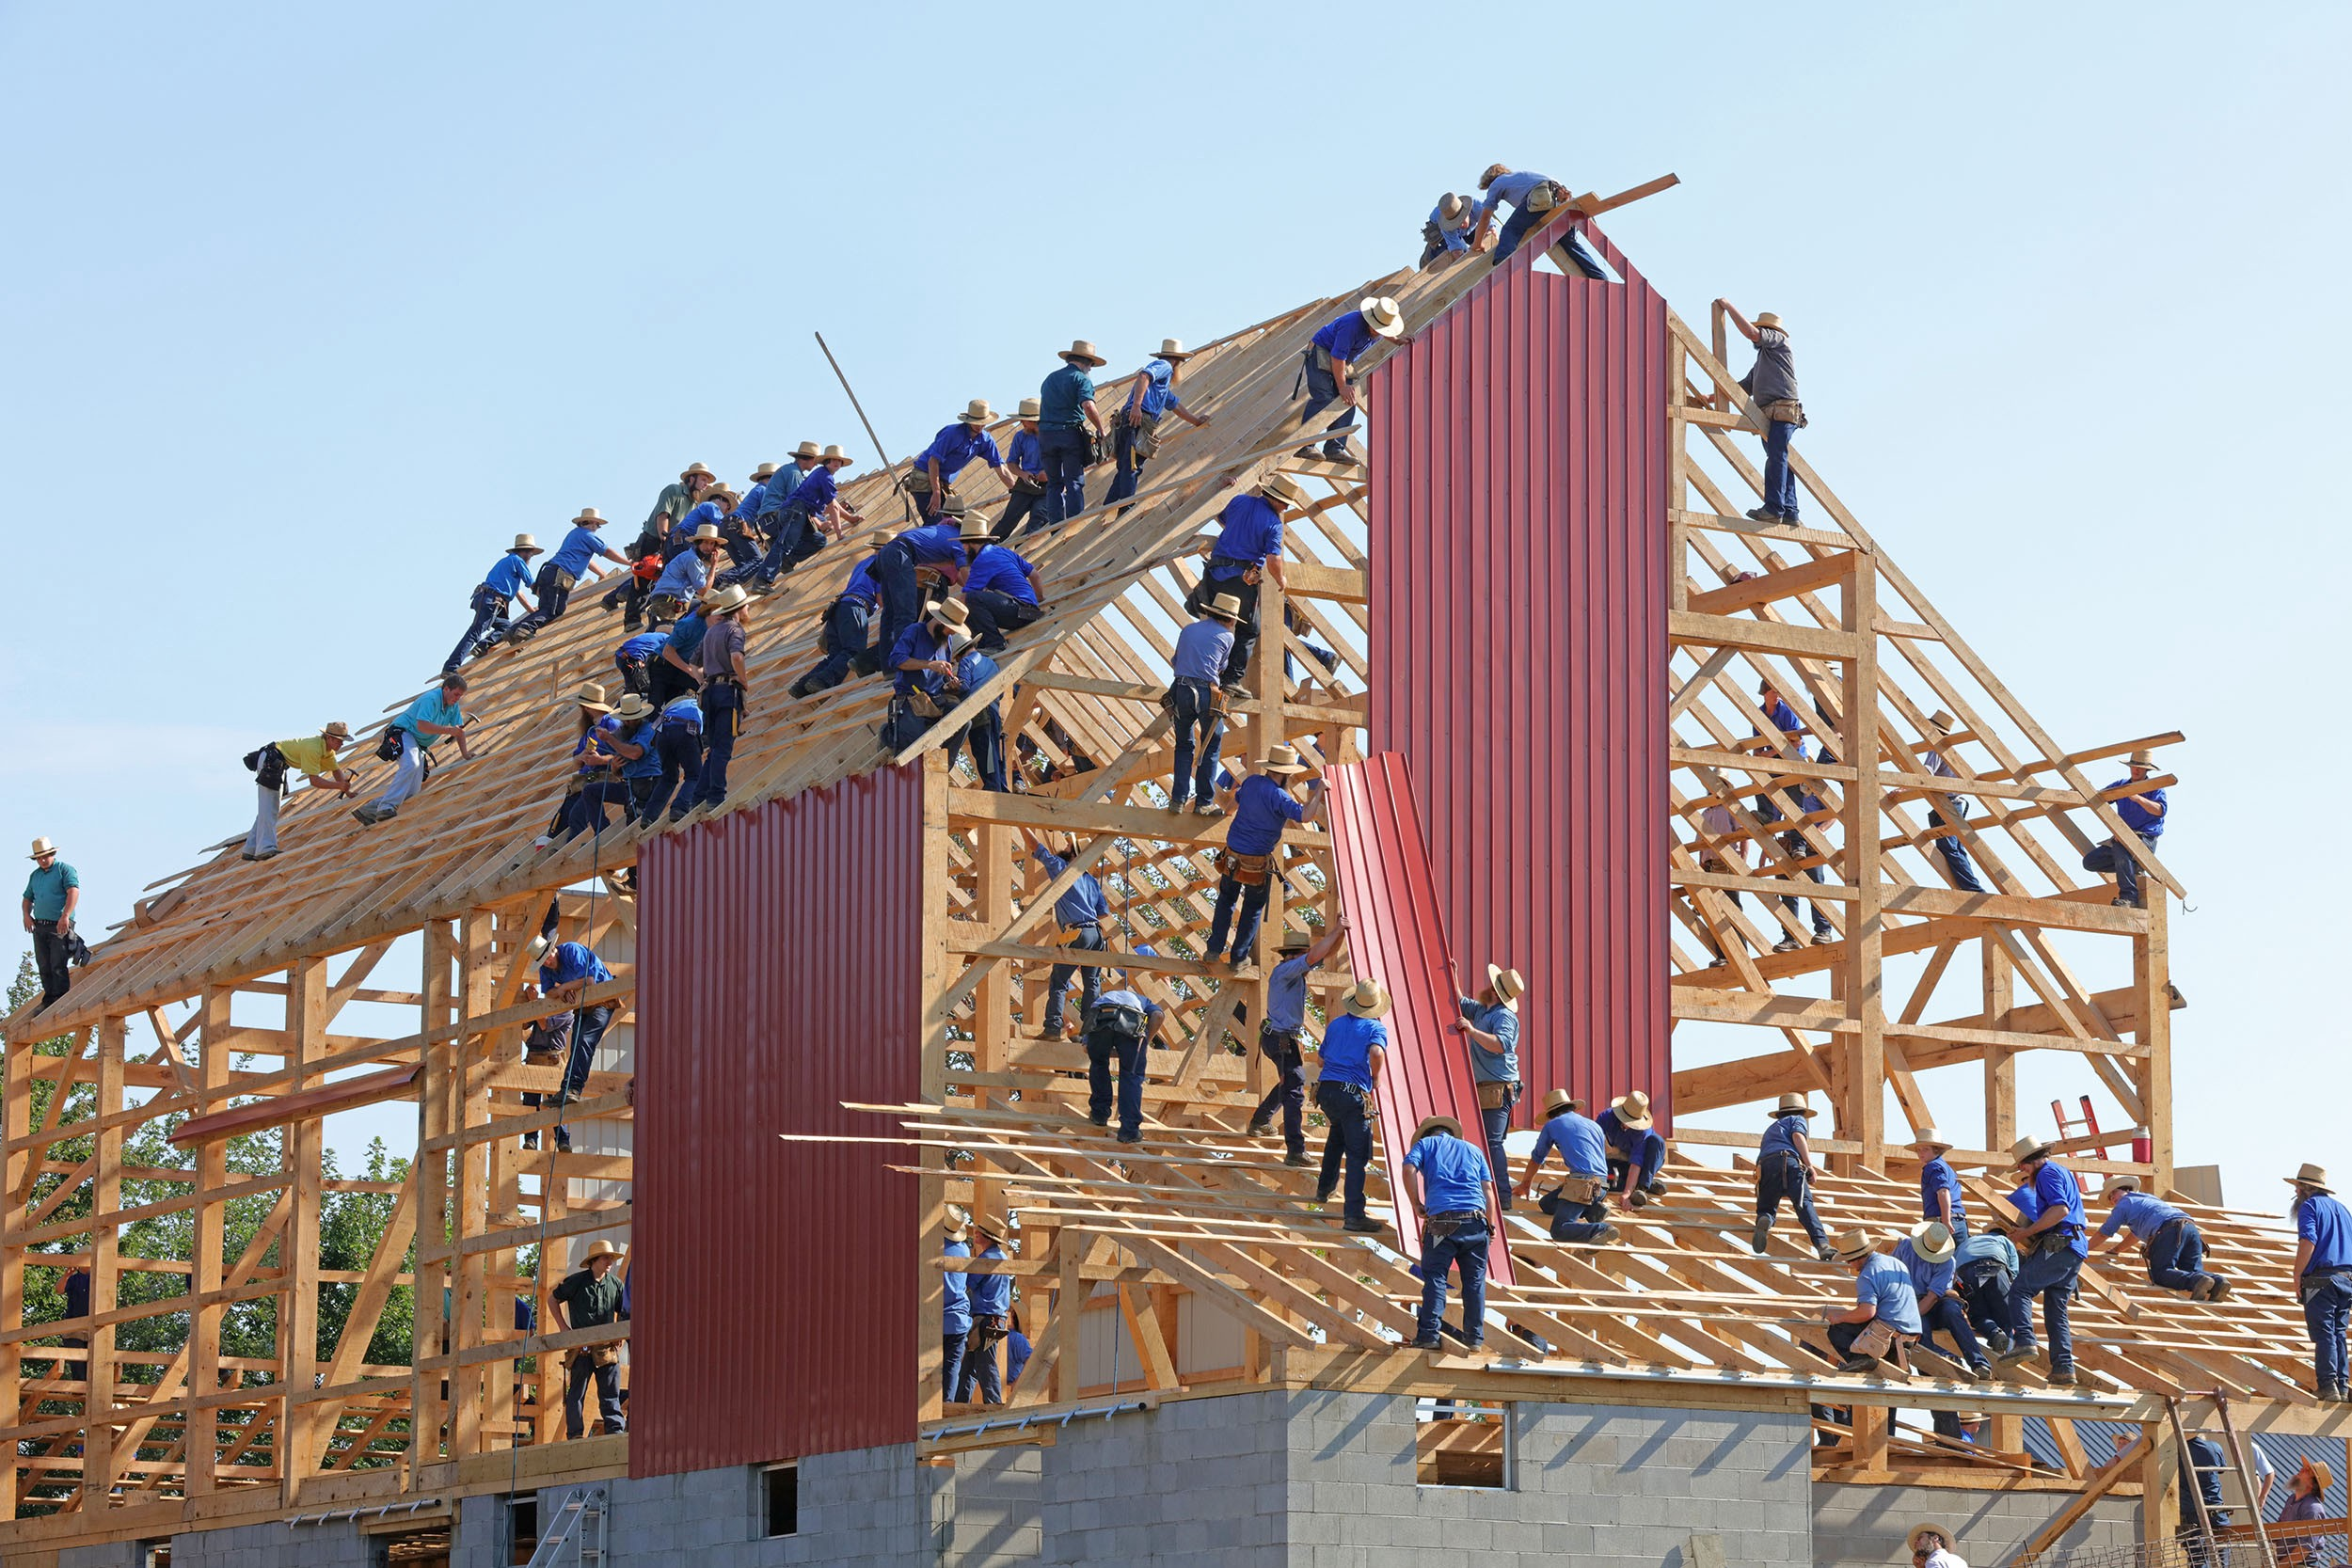 a large group of people building a house together, each helping with a different aspect